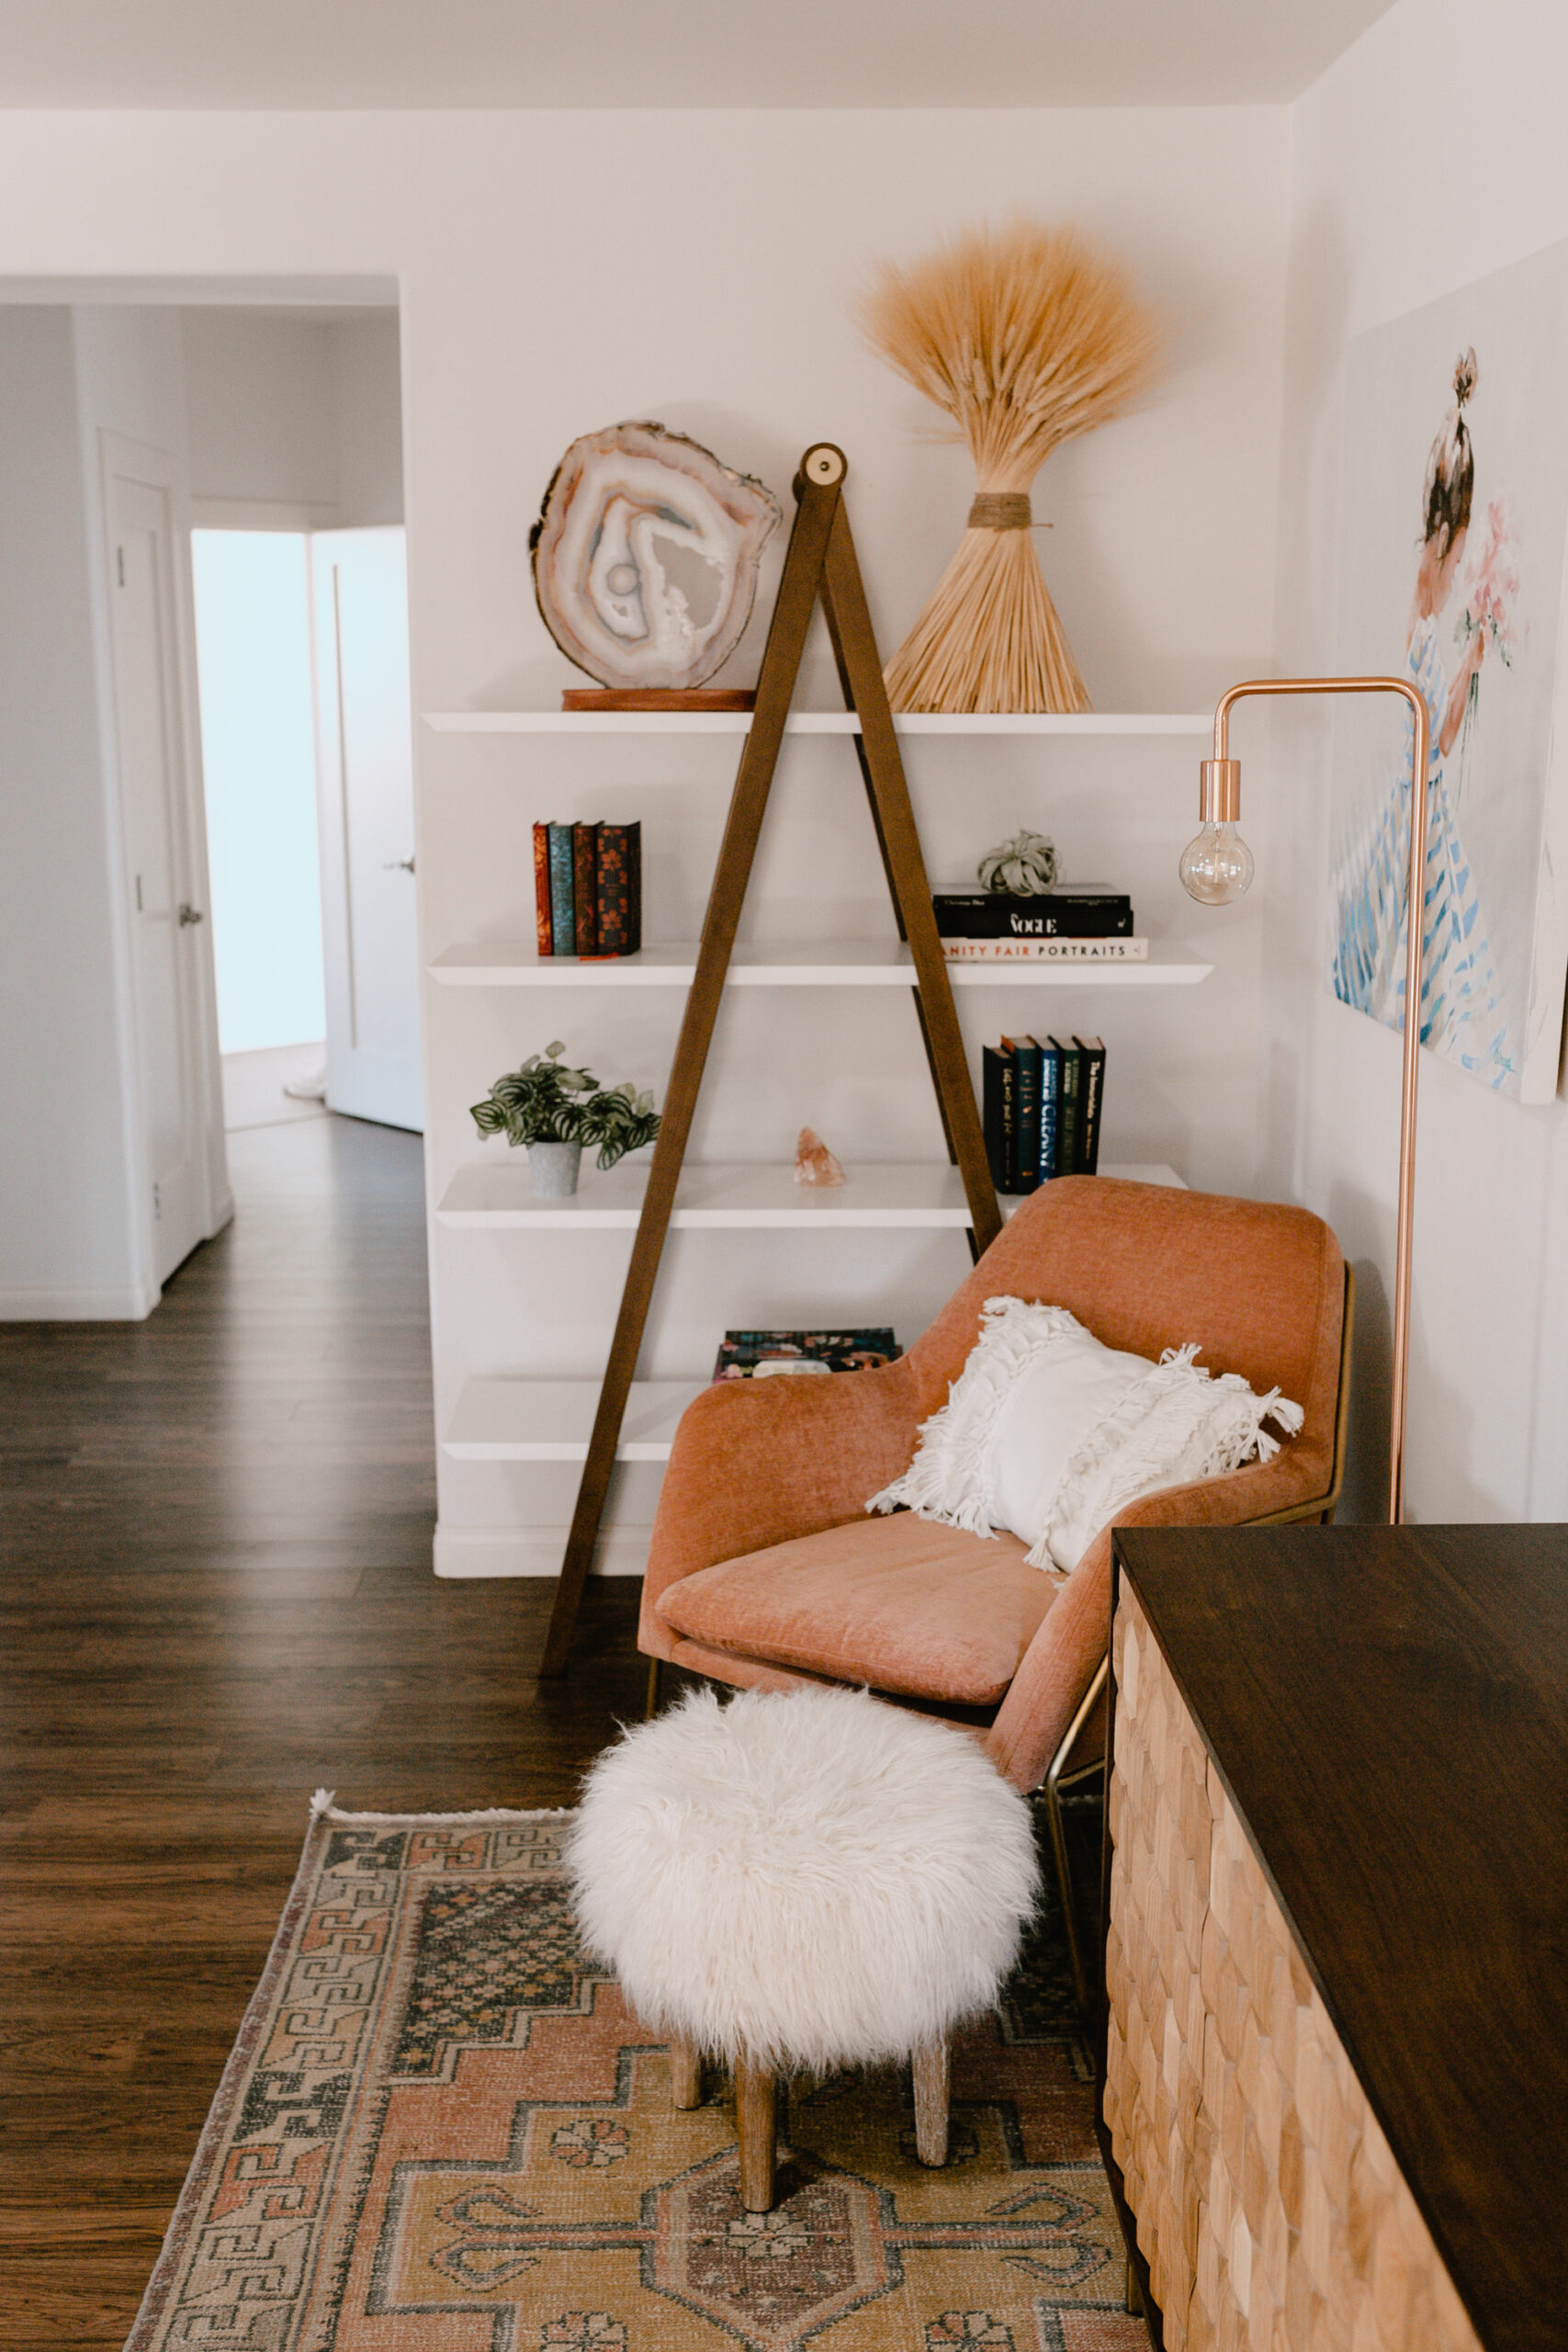 love this beautiful bookshelf from article in the awkward corner of our older home. #thelovedesignedlife #theldlhome #livingroom #cornerchair #bookshelf